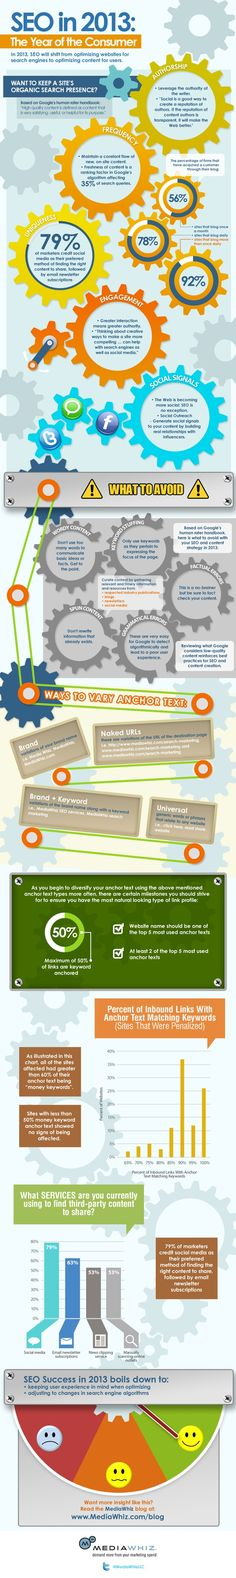 SEO in 2013: The Year of the Consumer #Infographic #seo